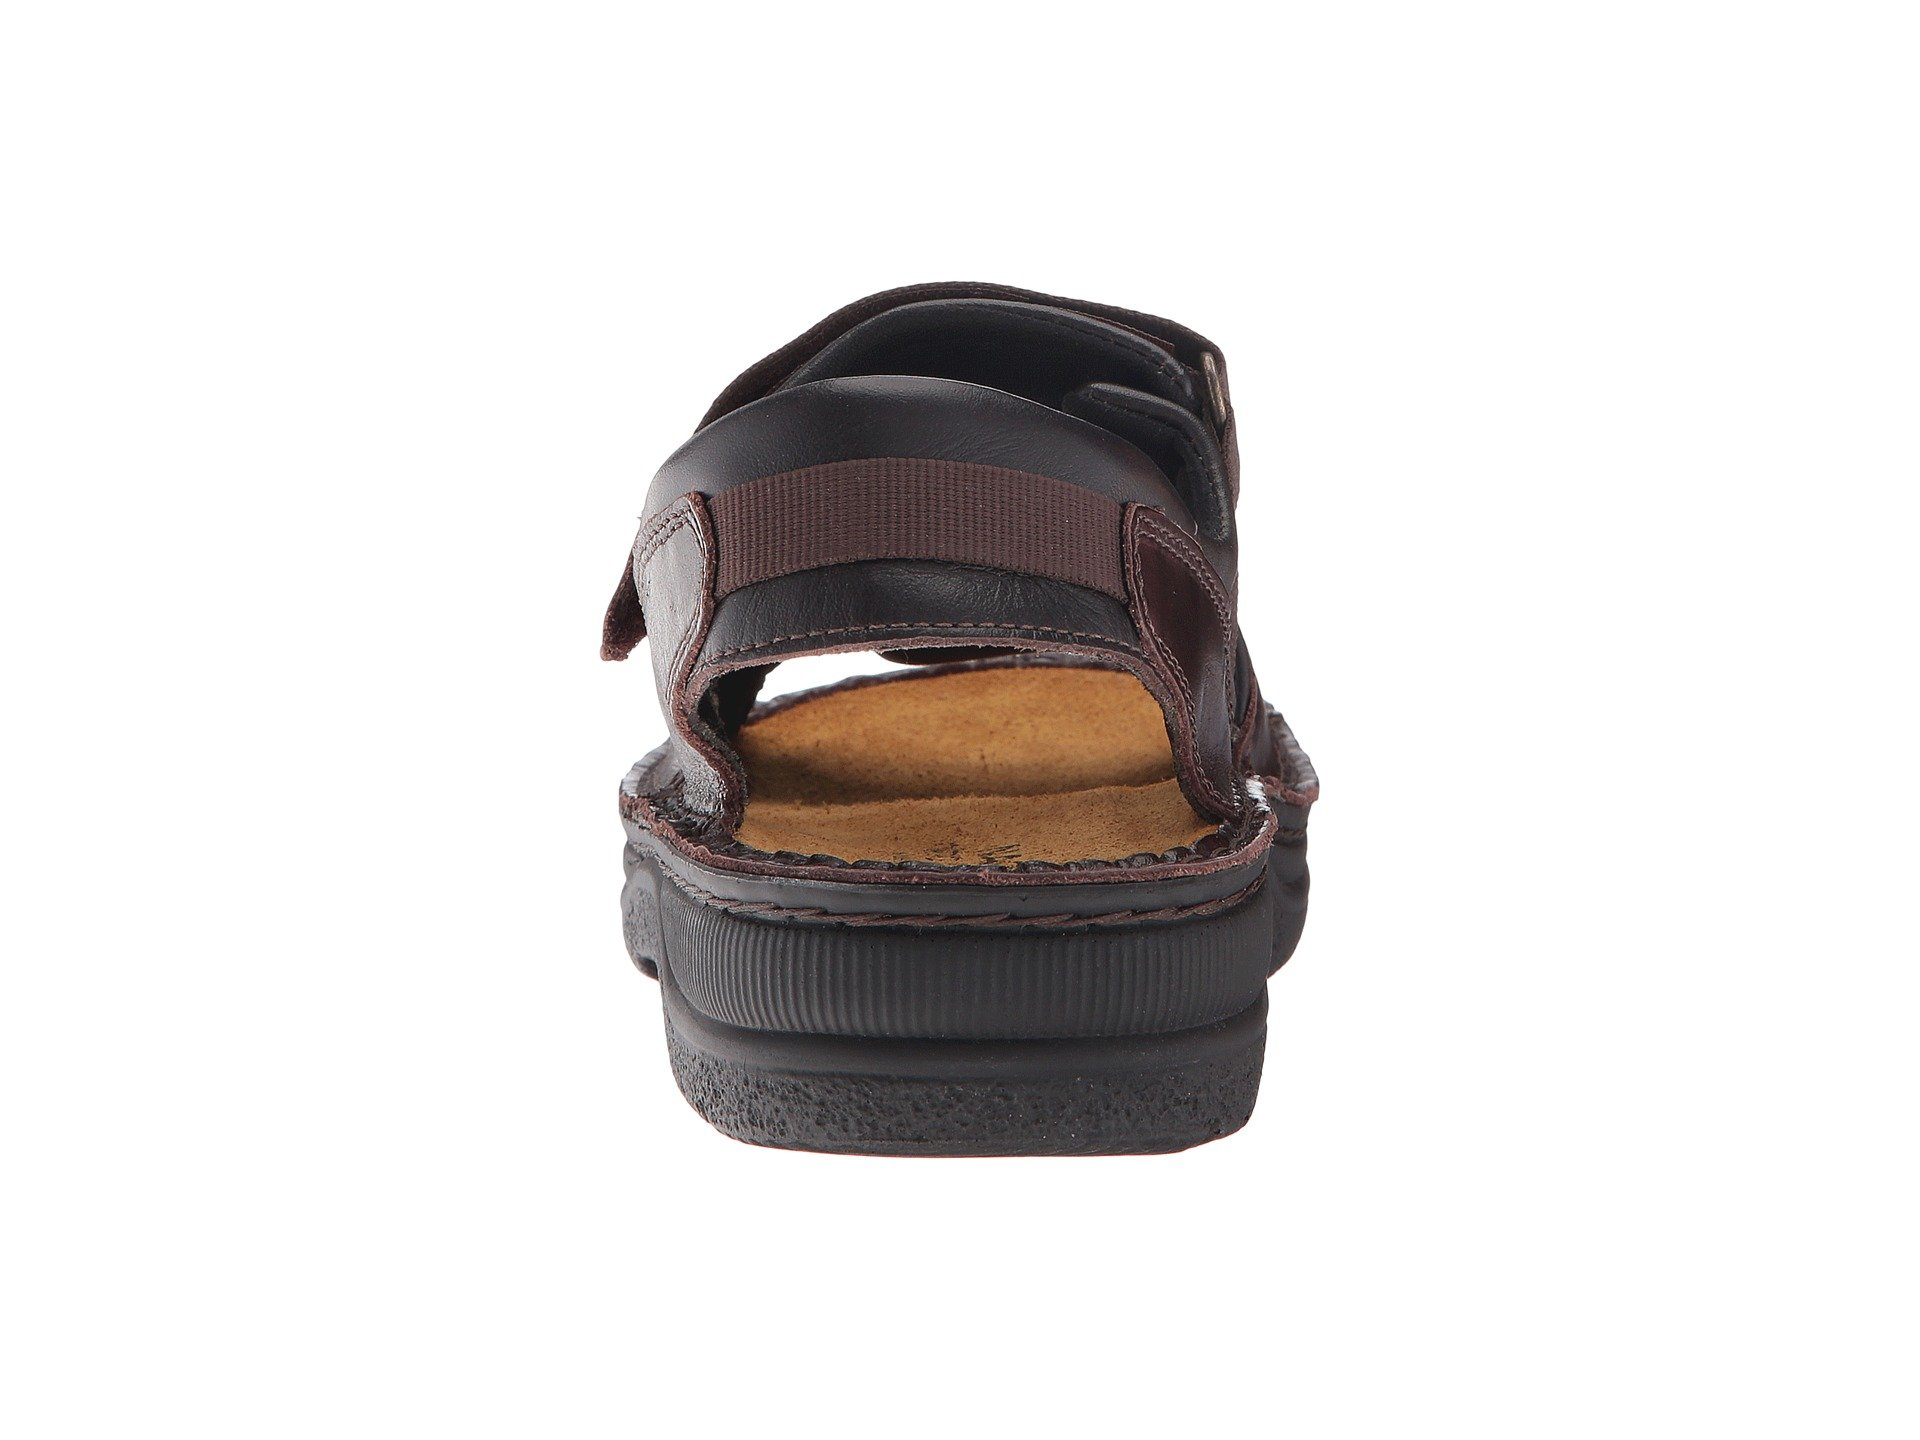 Andes Leather Walnut Walnut Leather Naot Leather Naot Naot Andes Walnut Naot Andes Walnut Leather Andes FqC1wF